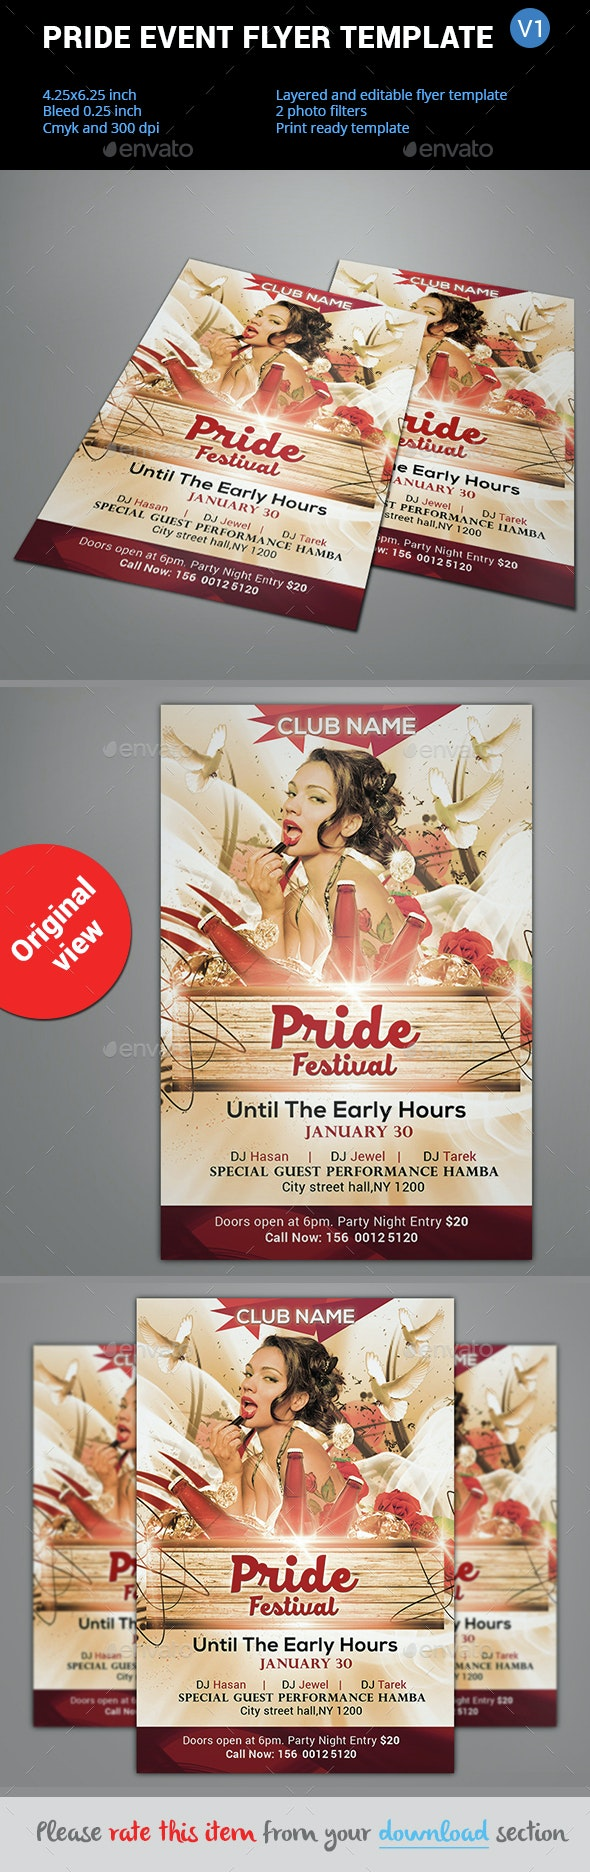 Pride Event Flyer Template V1 - Clubs & Parties Events